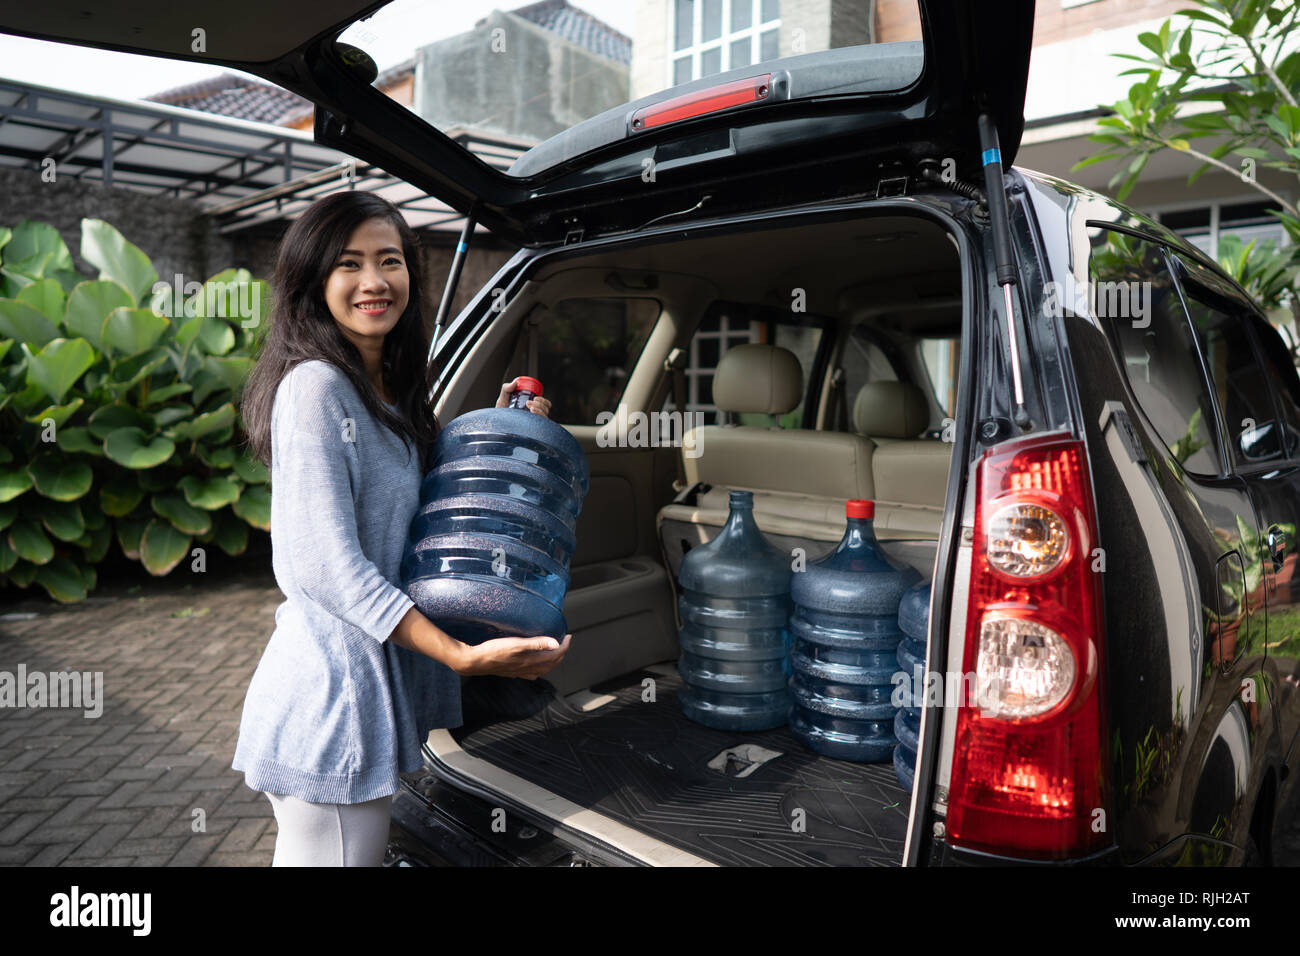 buying a new gallon of water - Stock Image